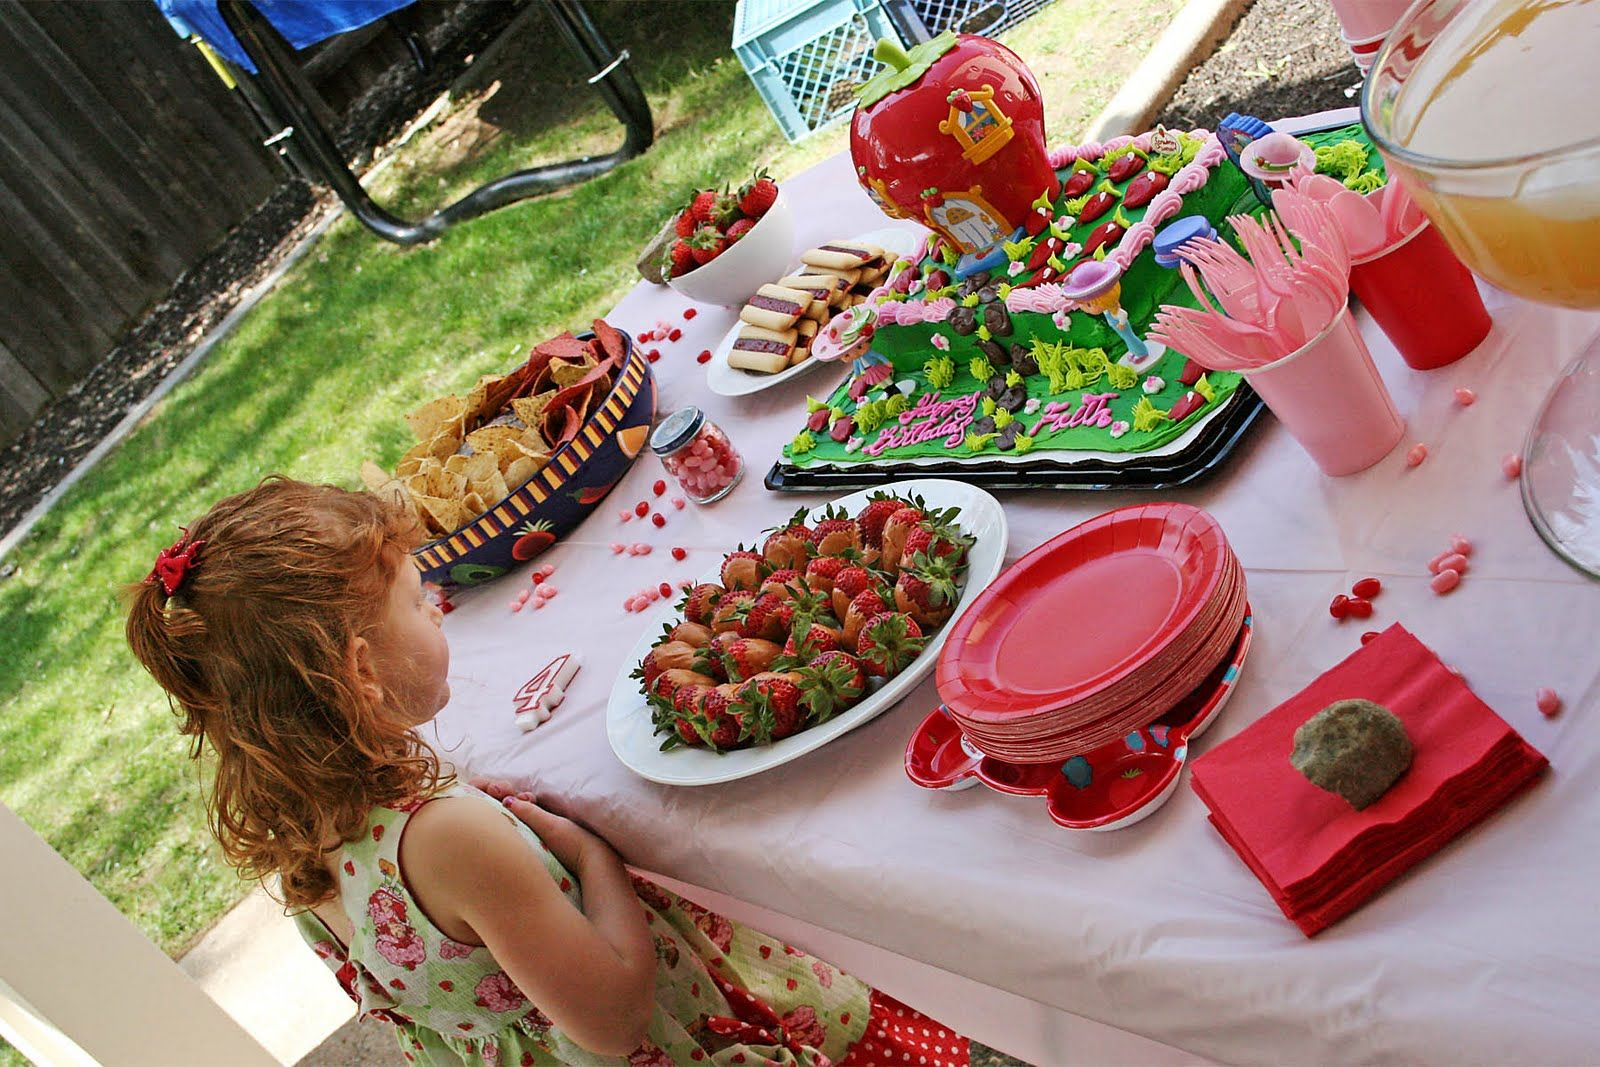 Pin by Justina Beckett on Strawberry Shortcake Party Theme